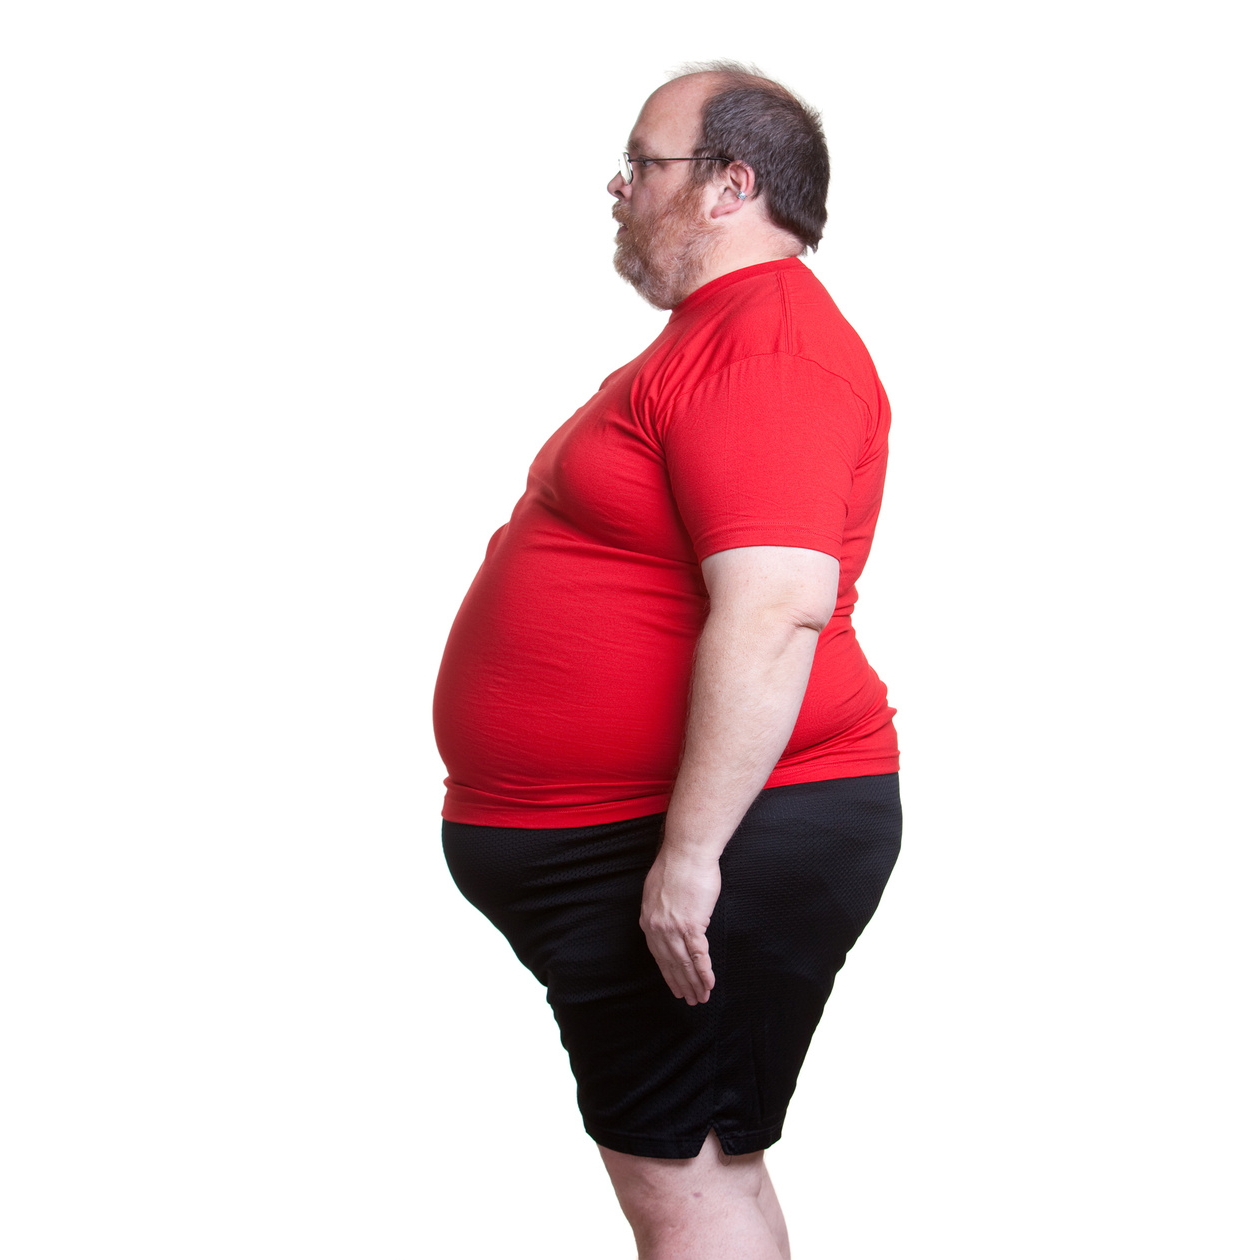 png of obese man free of obese man png transparent images 18698 pngio obese man png transparent images